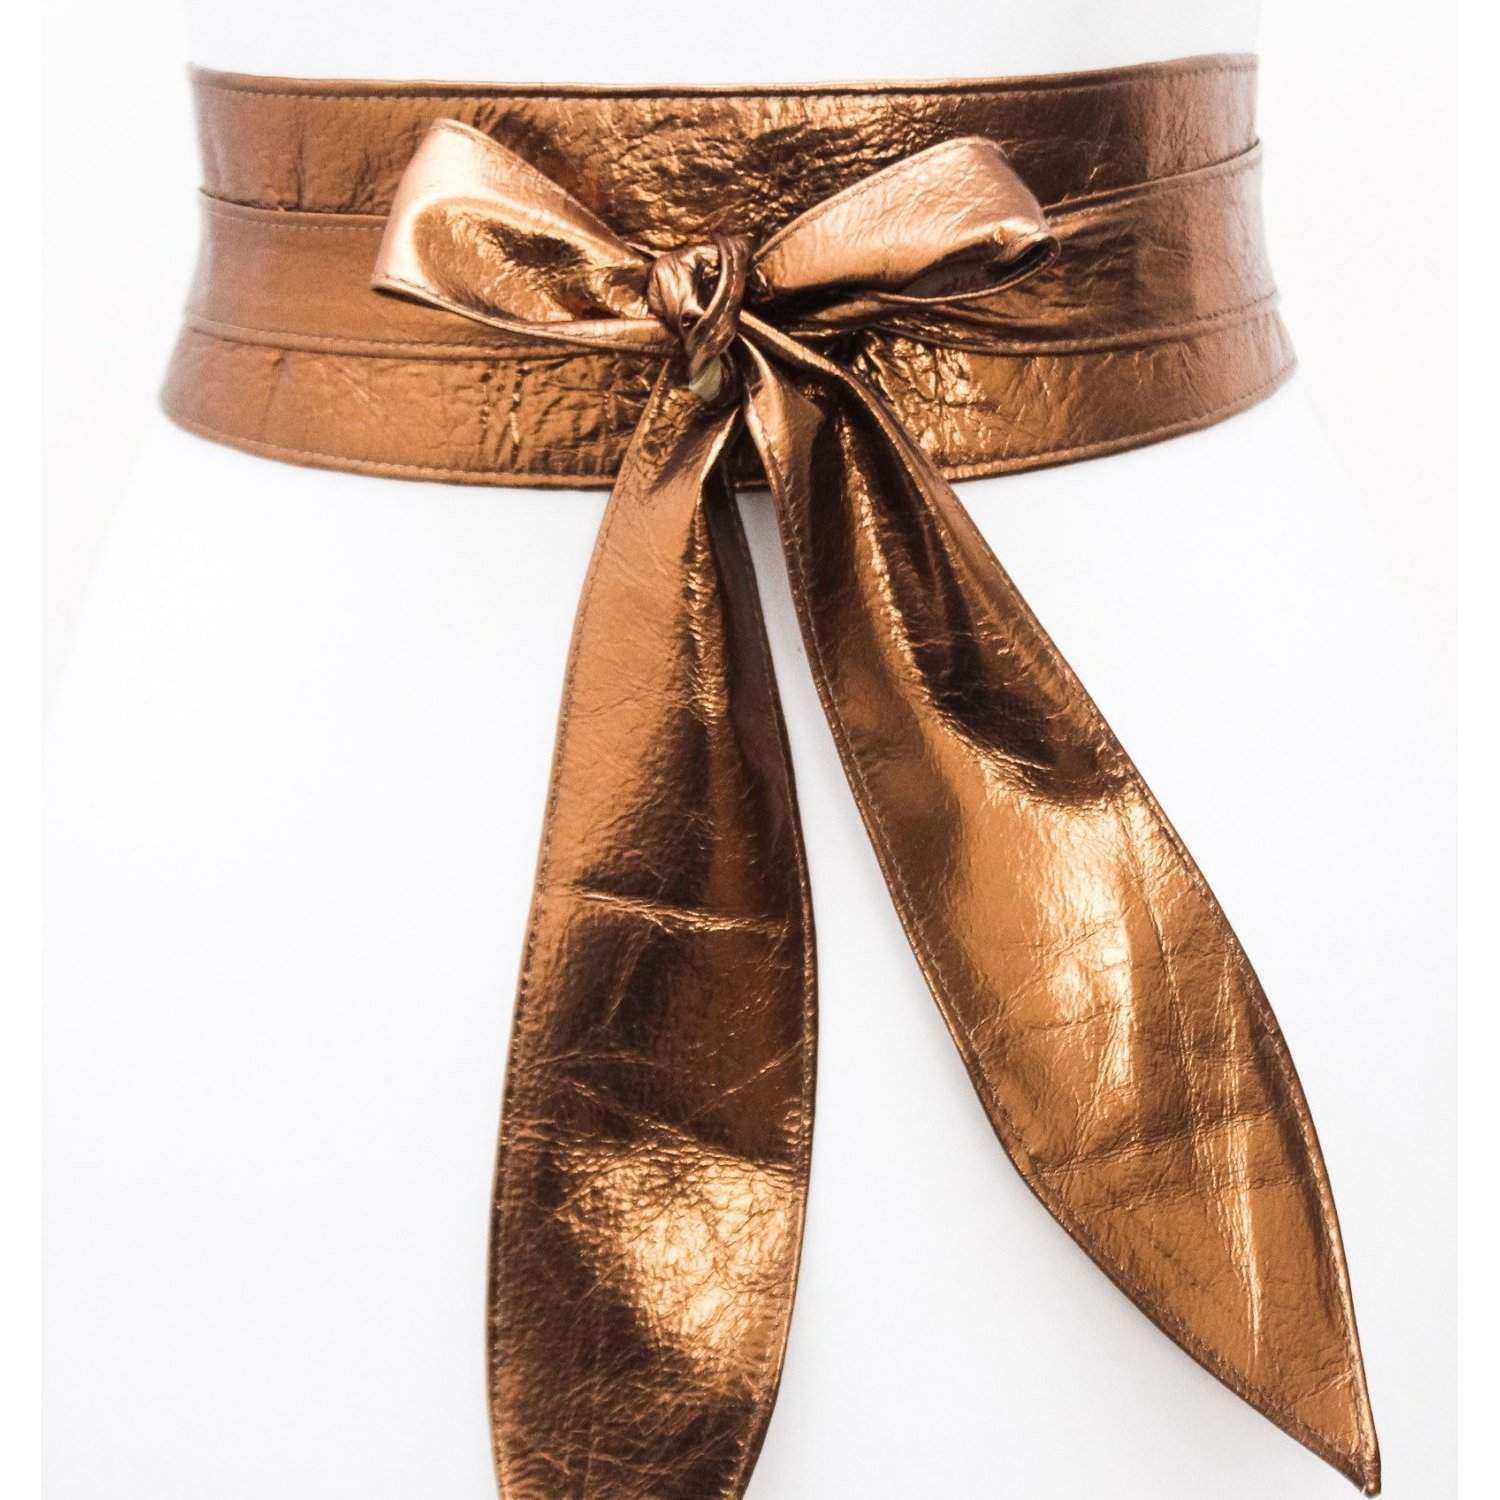 Copper Gold Leather Sash Belt | Copper Sash Belt | Copper Leather Obi belt | Leather Wrap Belt | Plus Size Belt | Gift for her Copper Belt - loveyaayaa